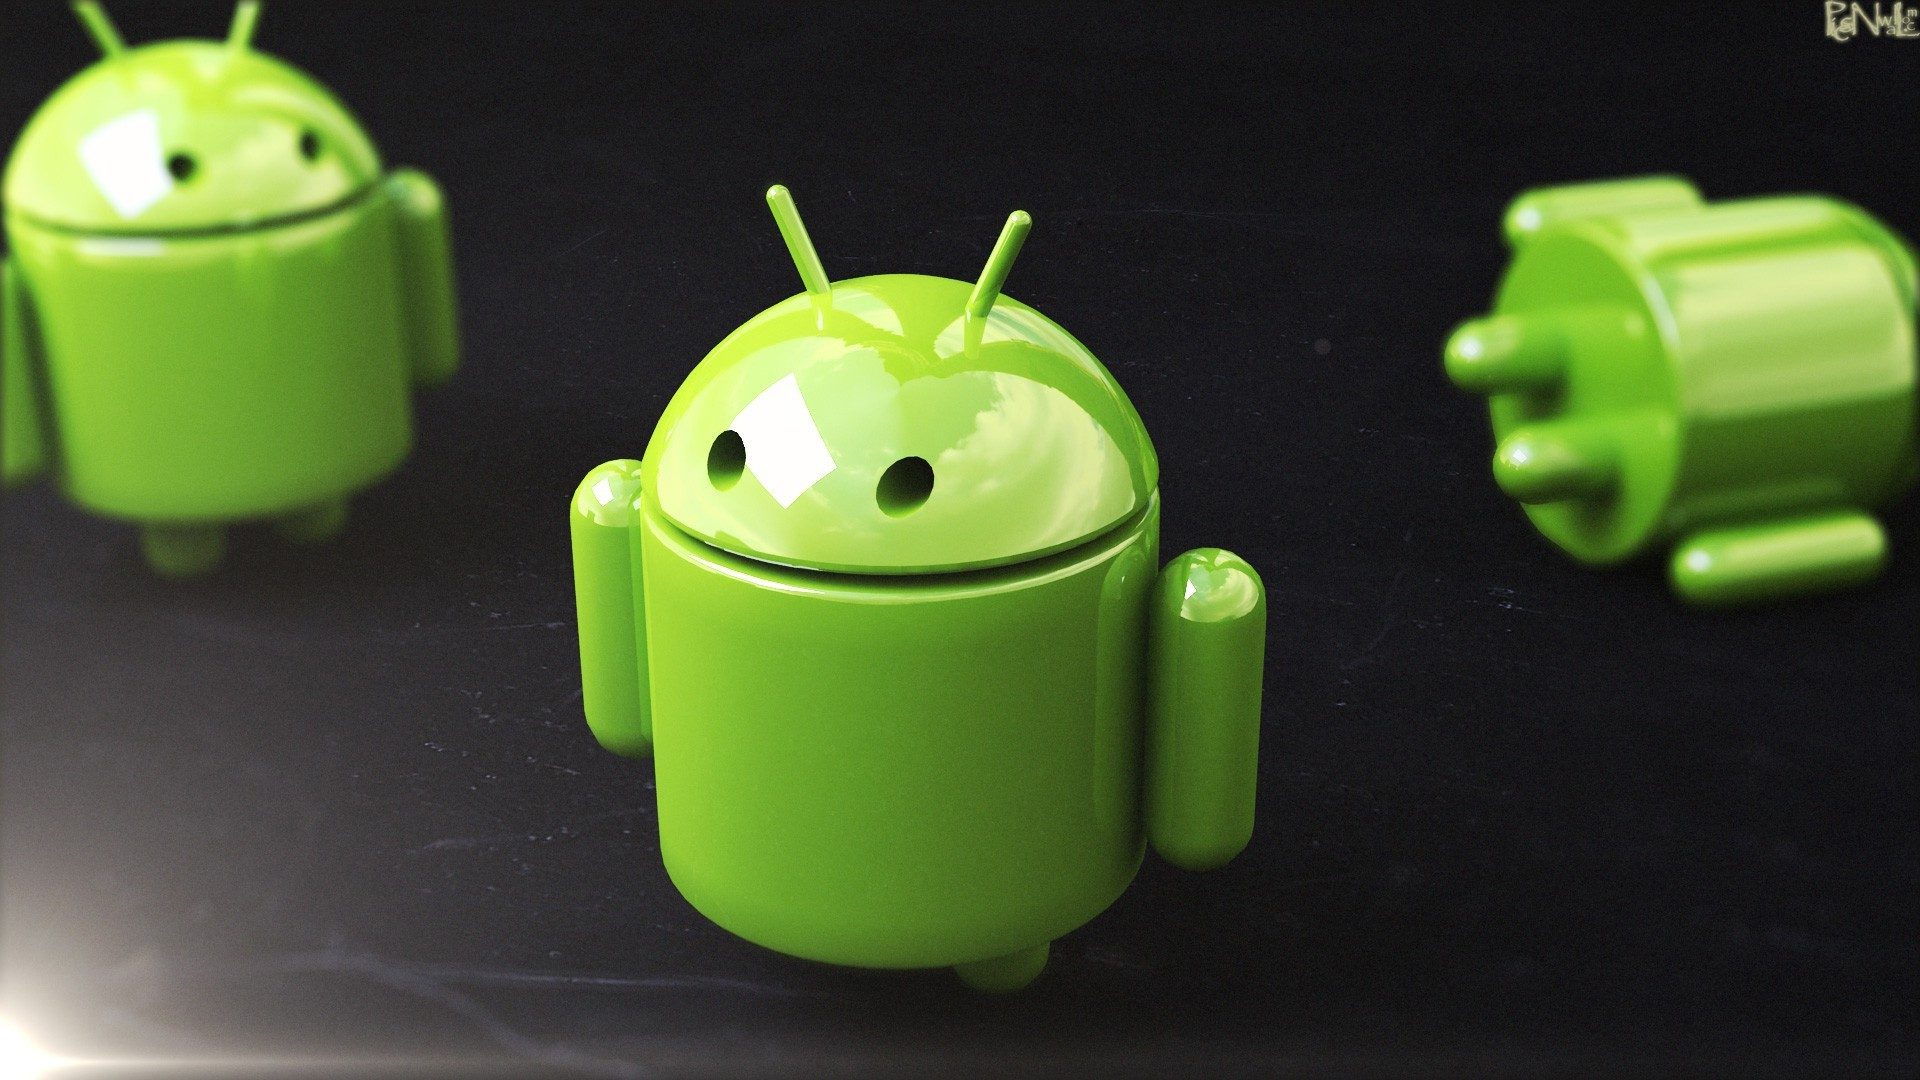 free 3d wallpapers for android tablet windows 8 enterprise